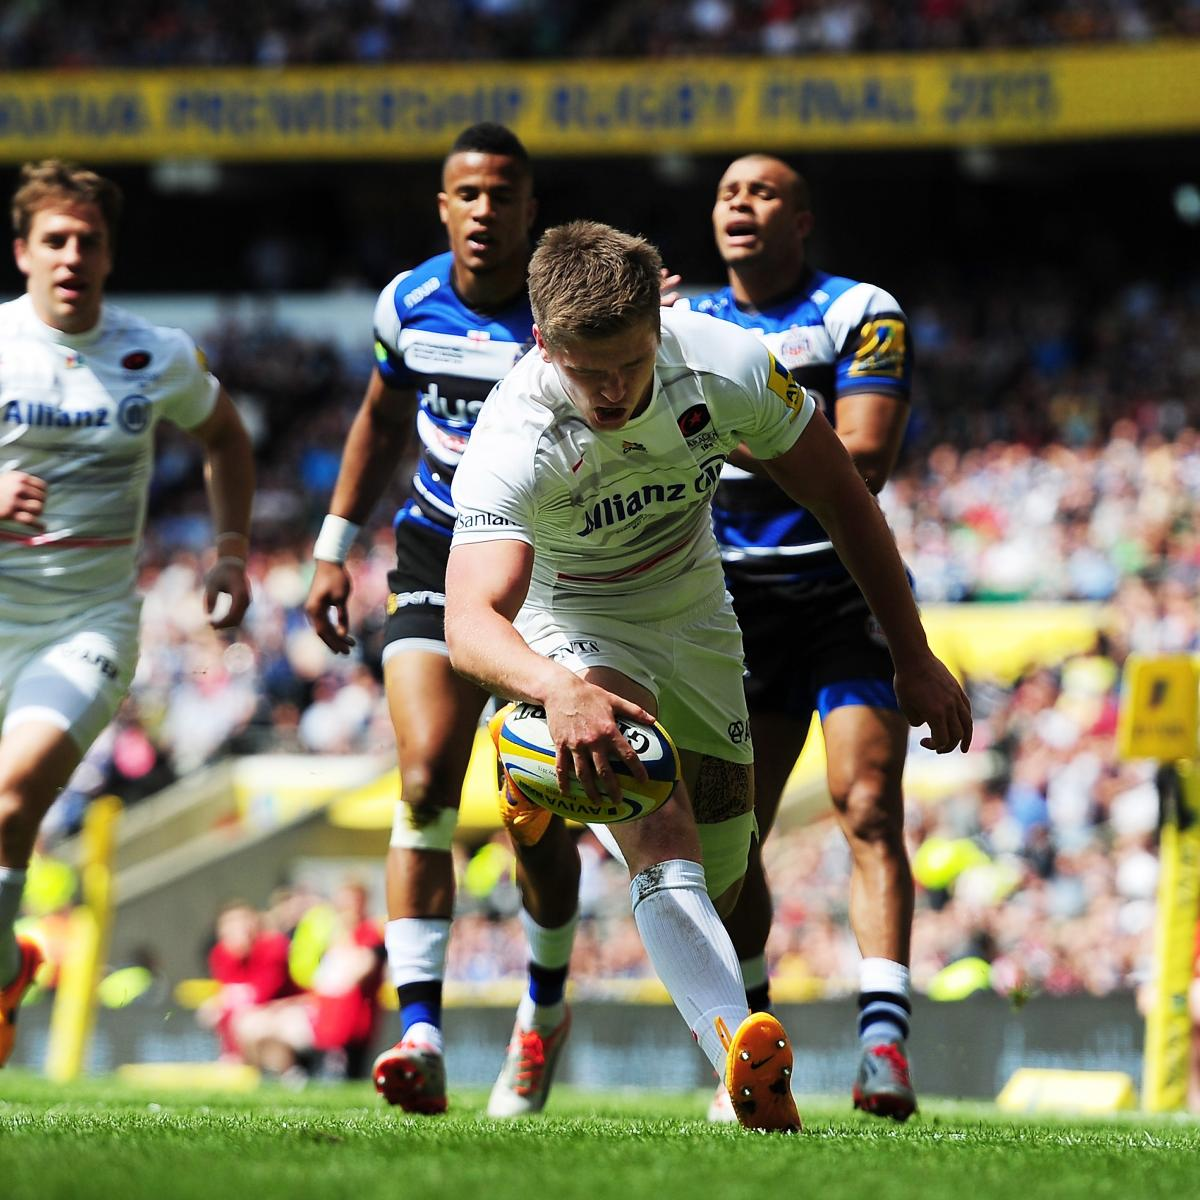 Aviva Premiership Final 2015: Score And Reaction For Bath